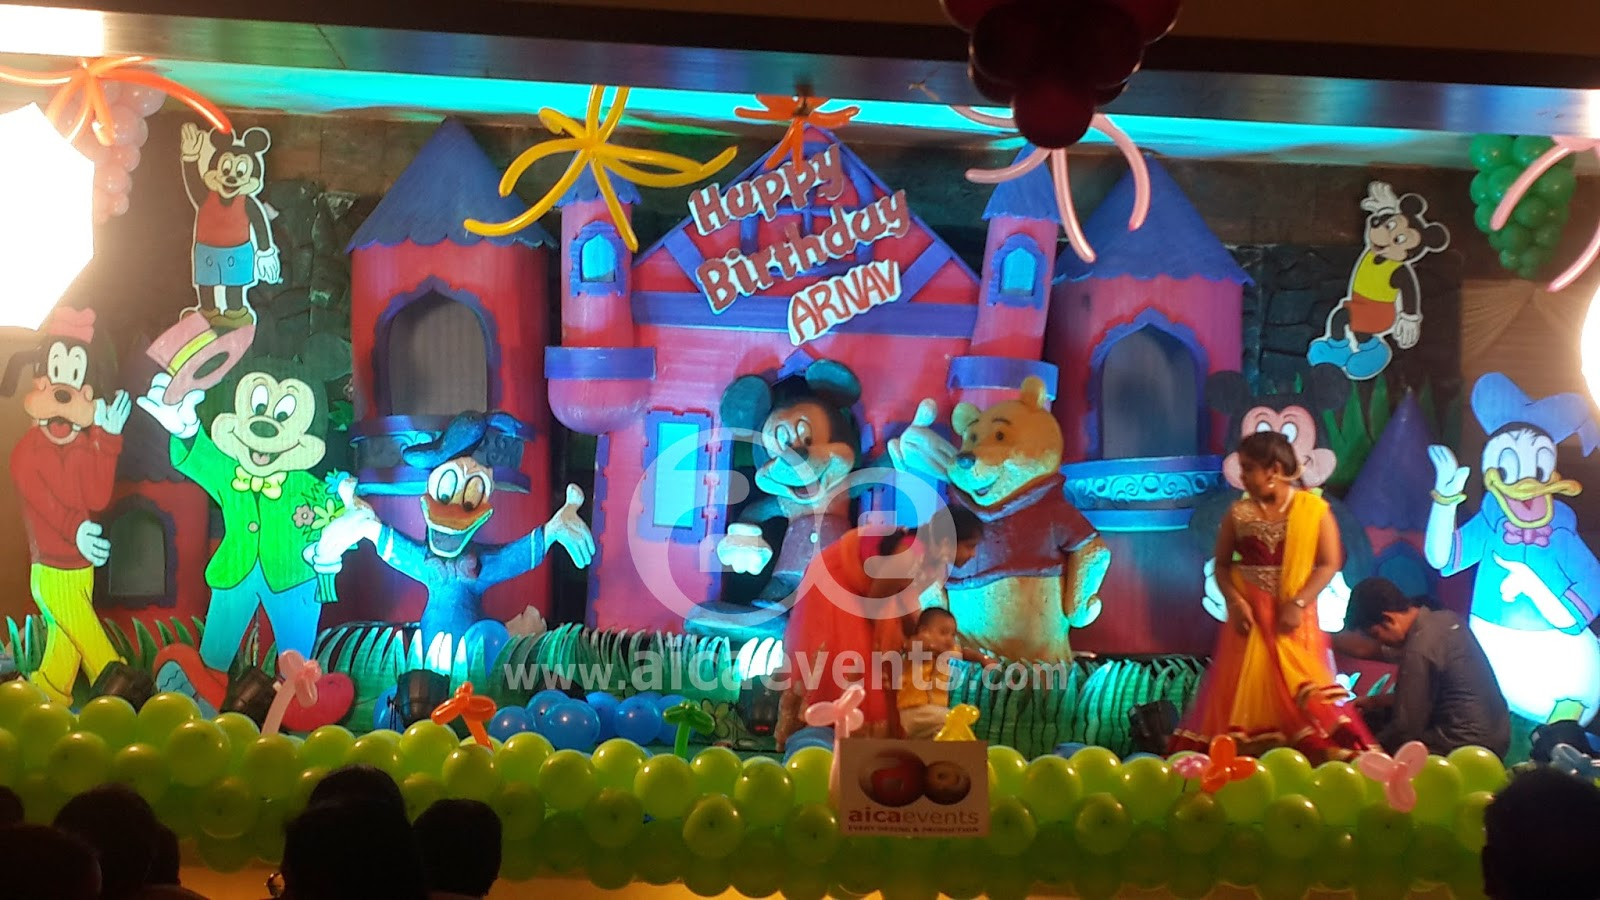 Aicaevents Mickey Mouse Club Theme Decorations